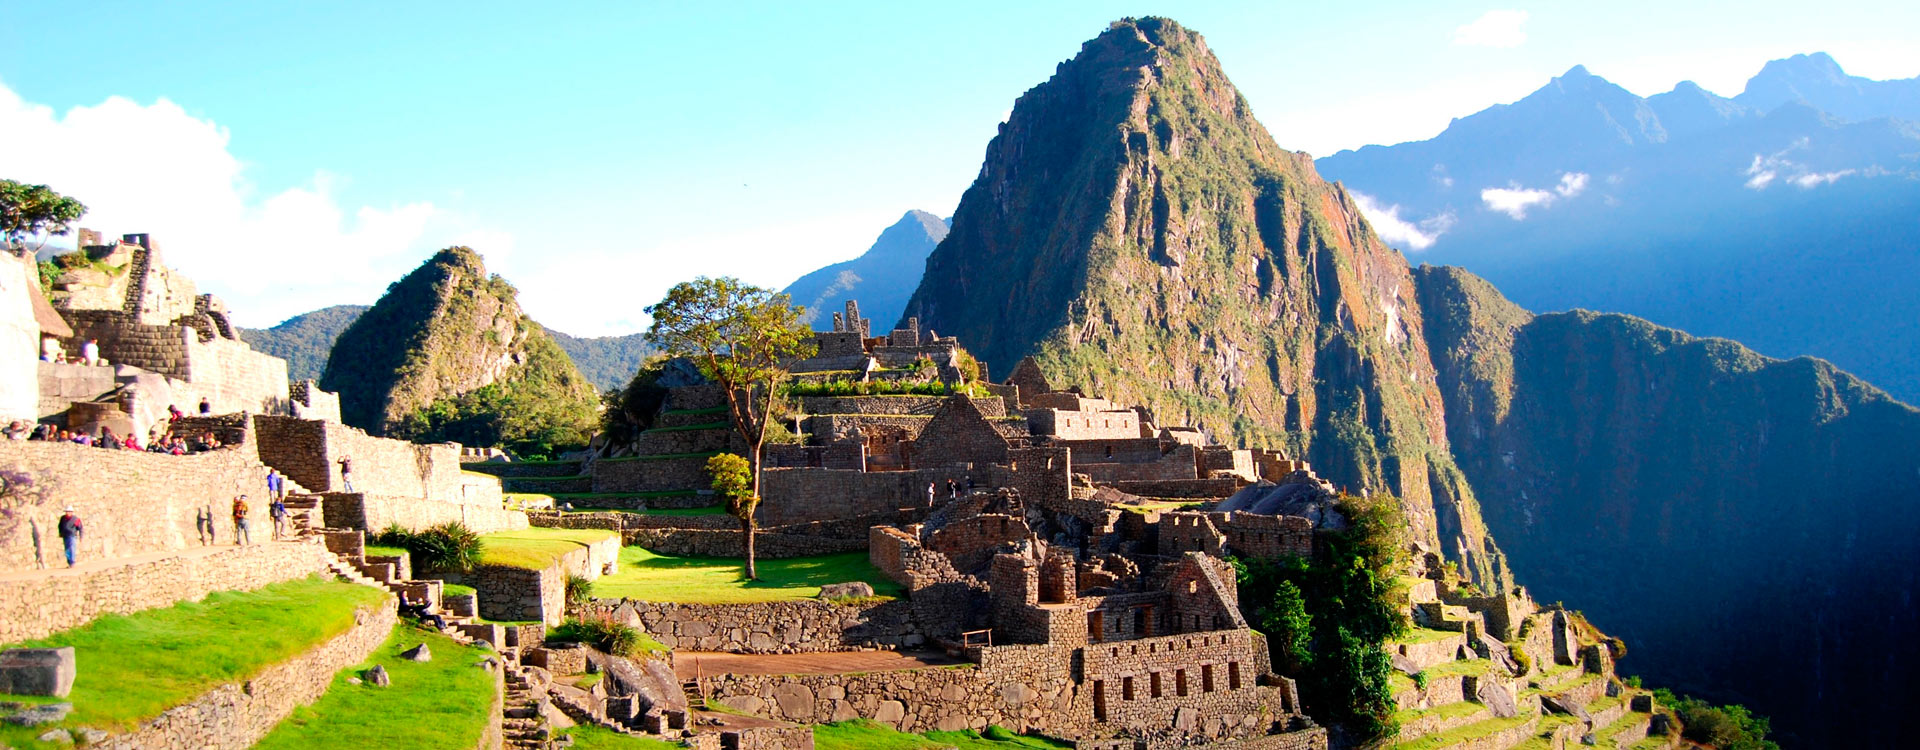 Cusco Machu Picchu Express – 4 days